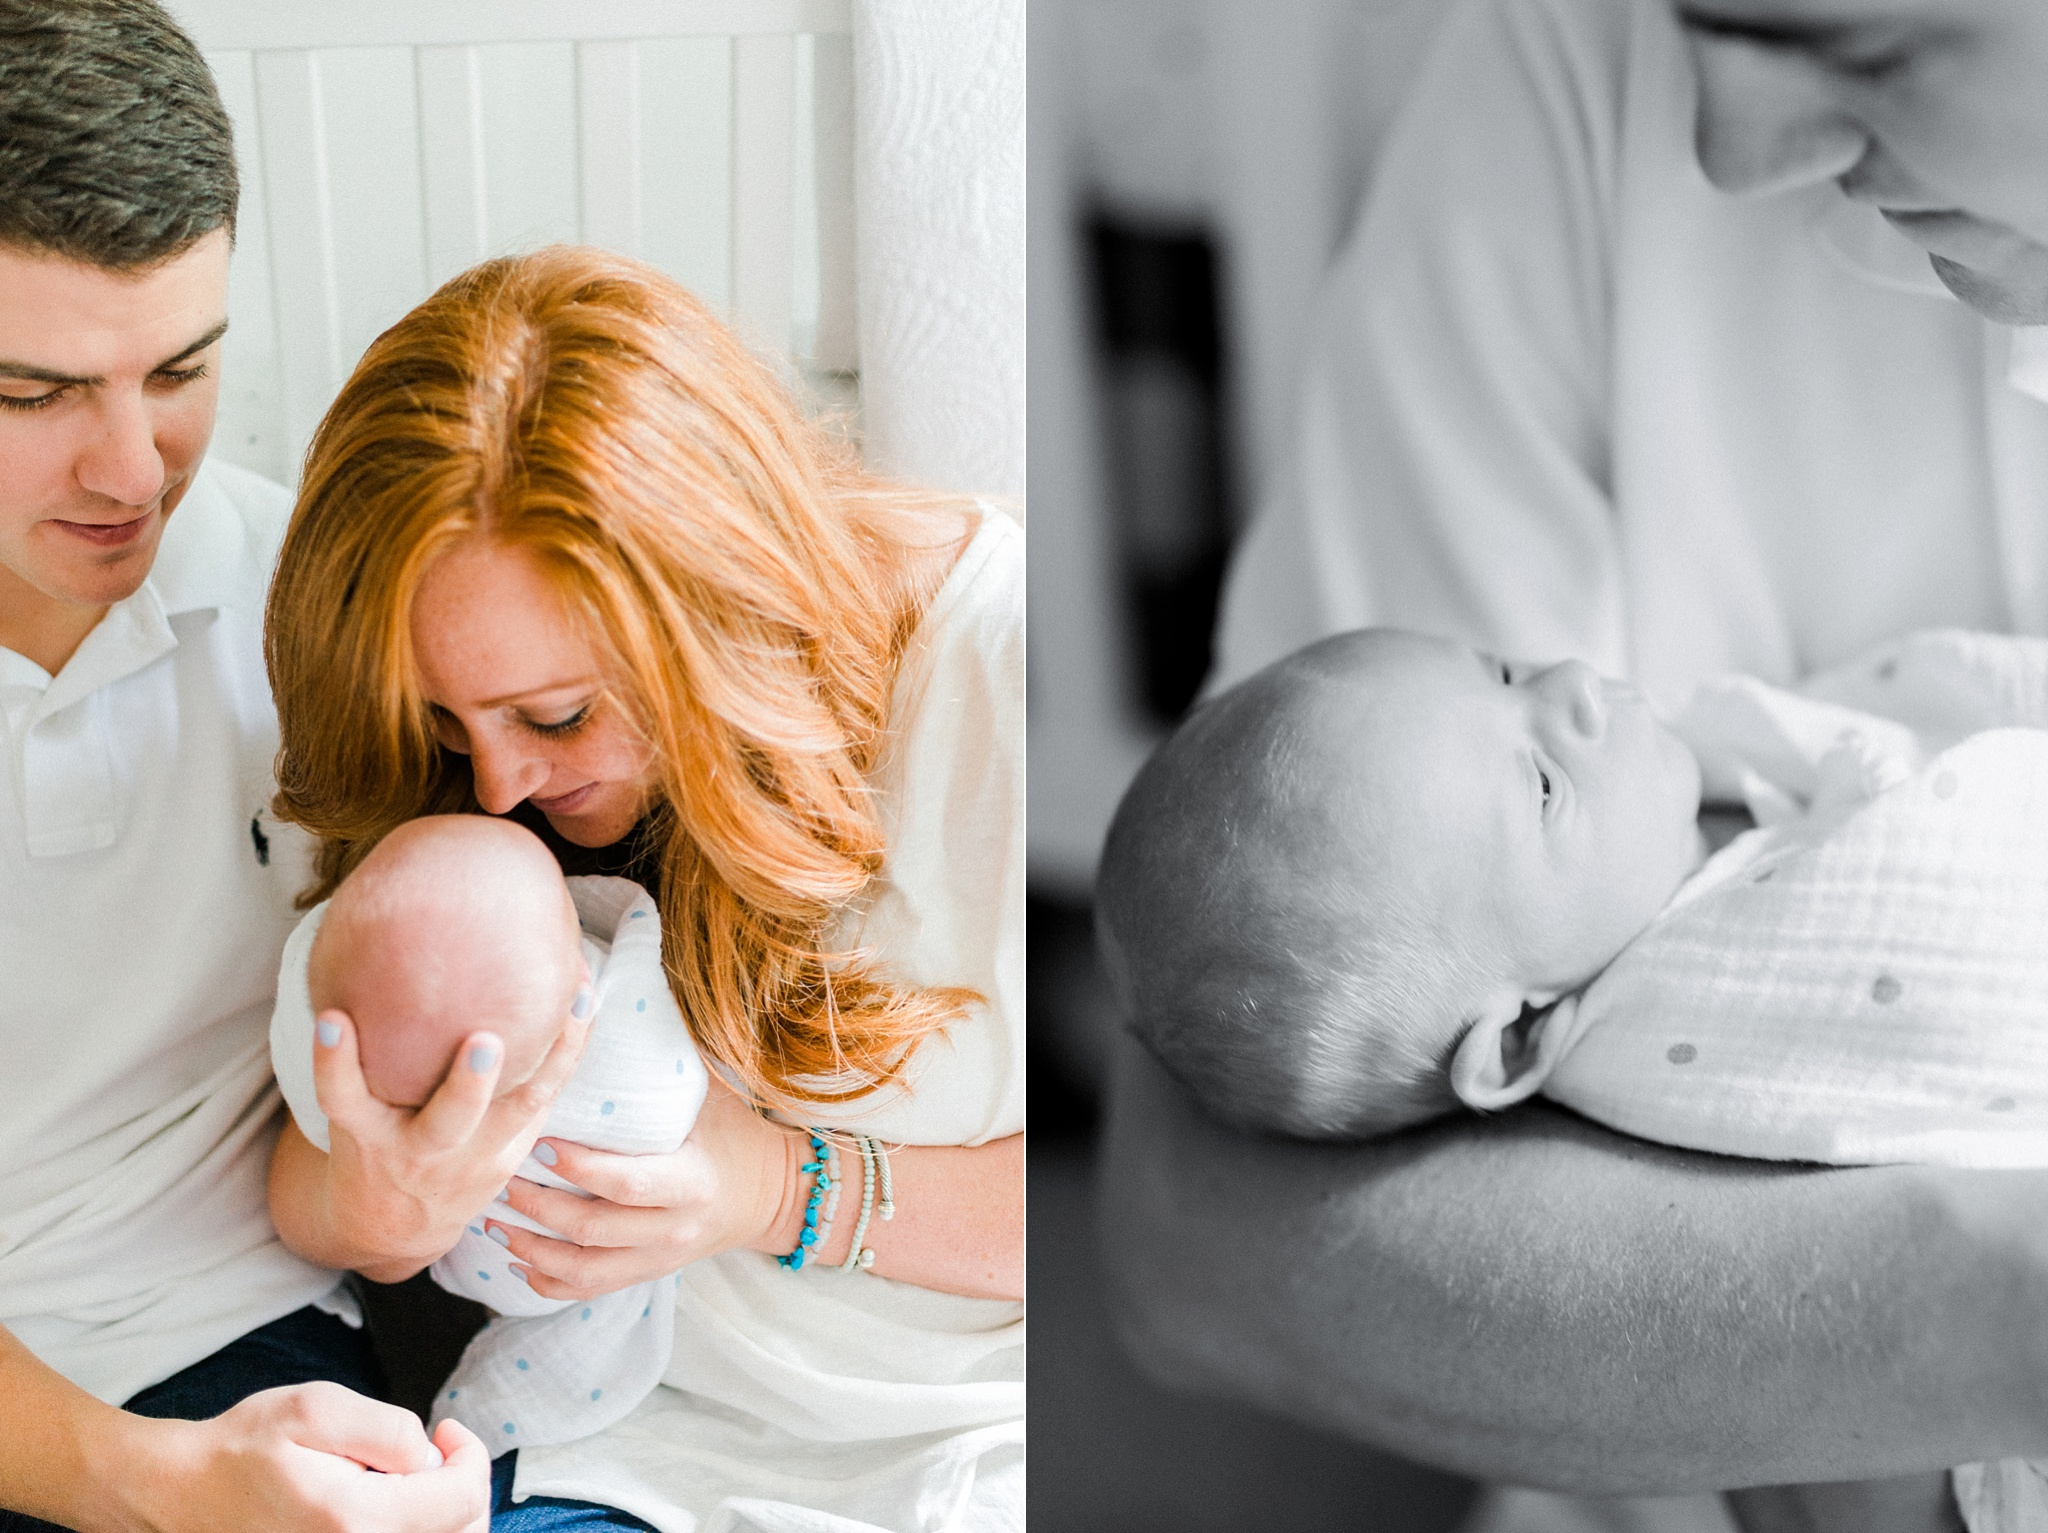 atlanta-georgia-film-lifestyle-newborn-photographer-brooks-wilder-106.jpg